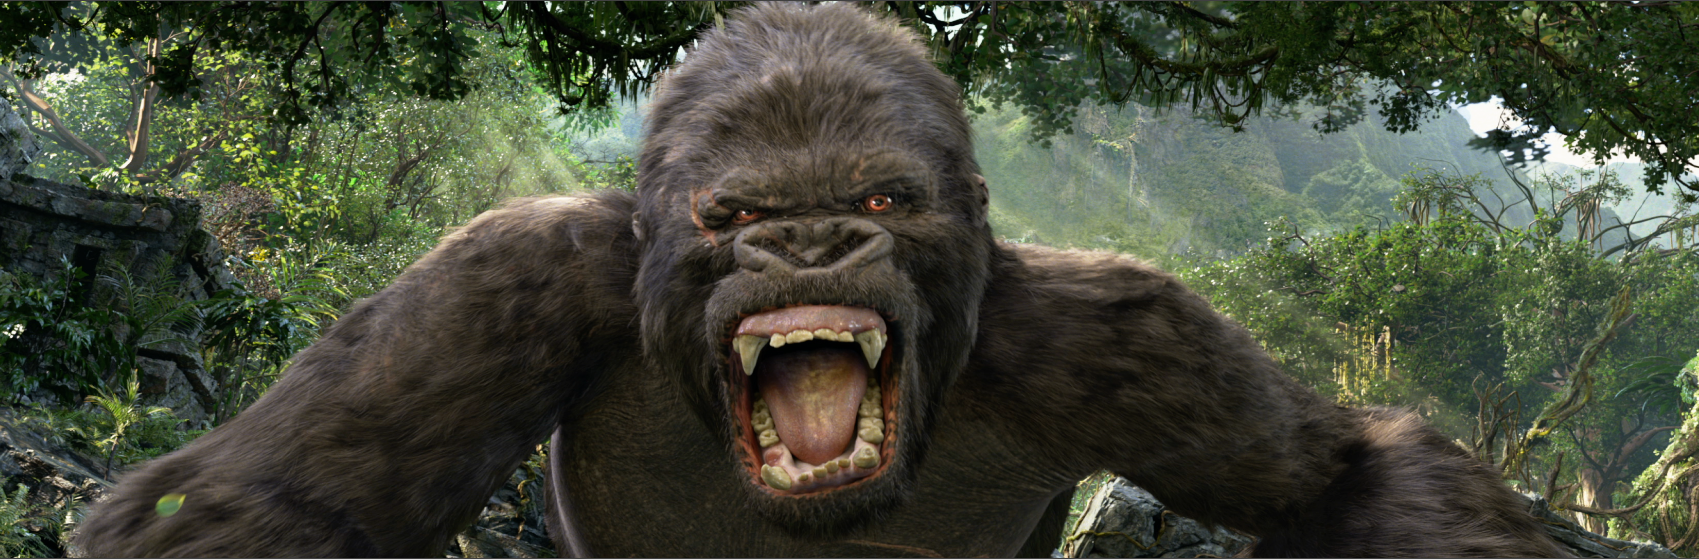 Skull Island: Reign of Kong Ride: 16 Things to Know | Collider